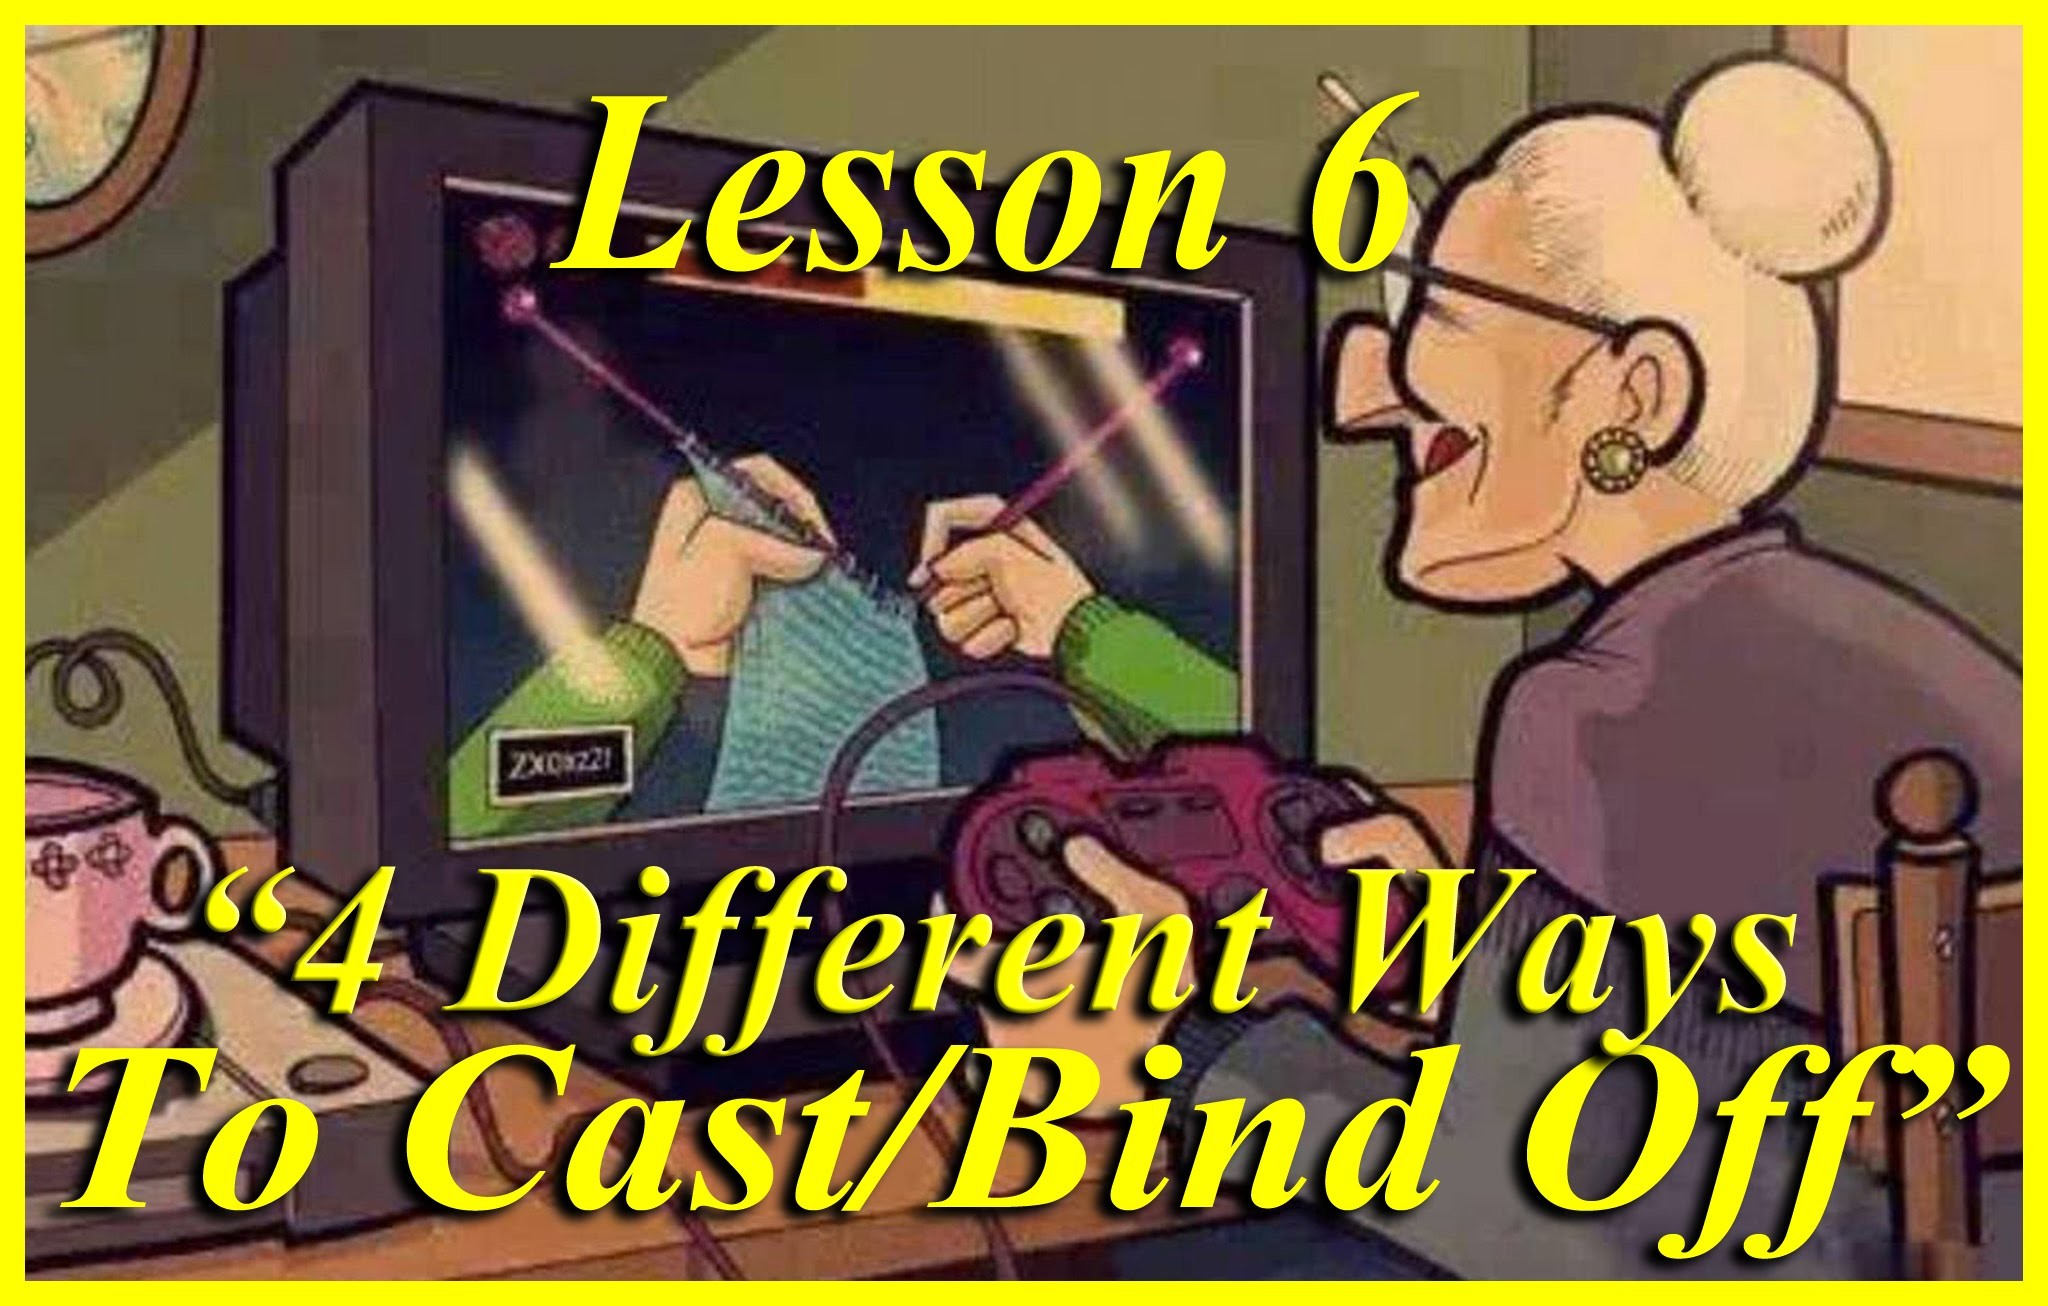 *HOW TO KNIT* Beginners Lesson 6 of 6. 4 Ways To Cast.Bind Off